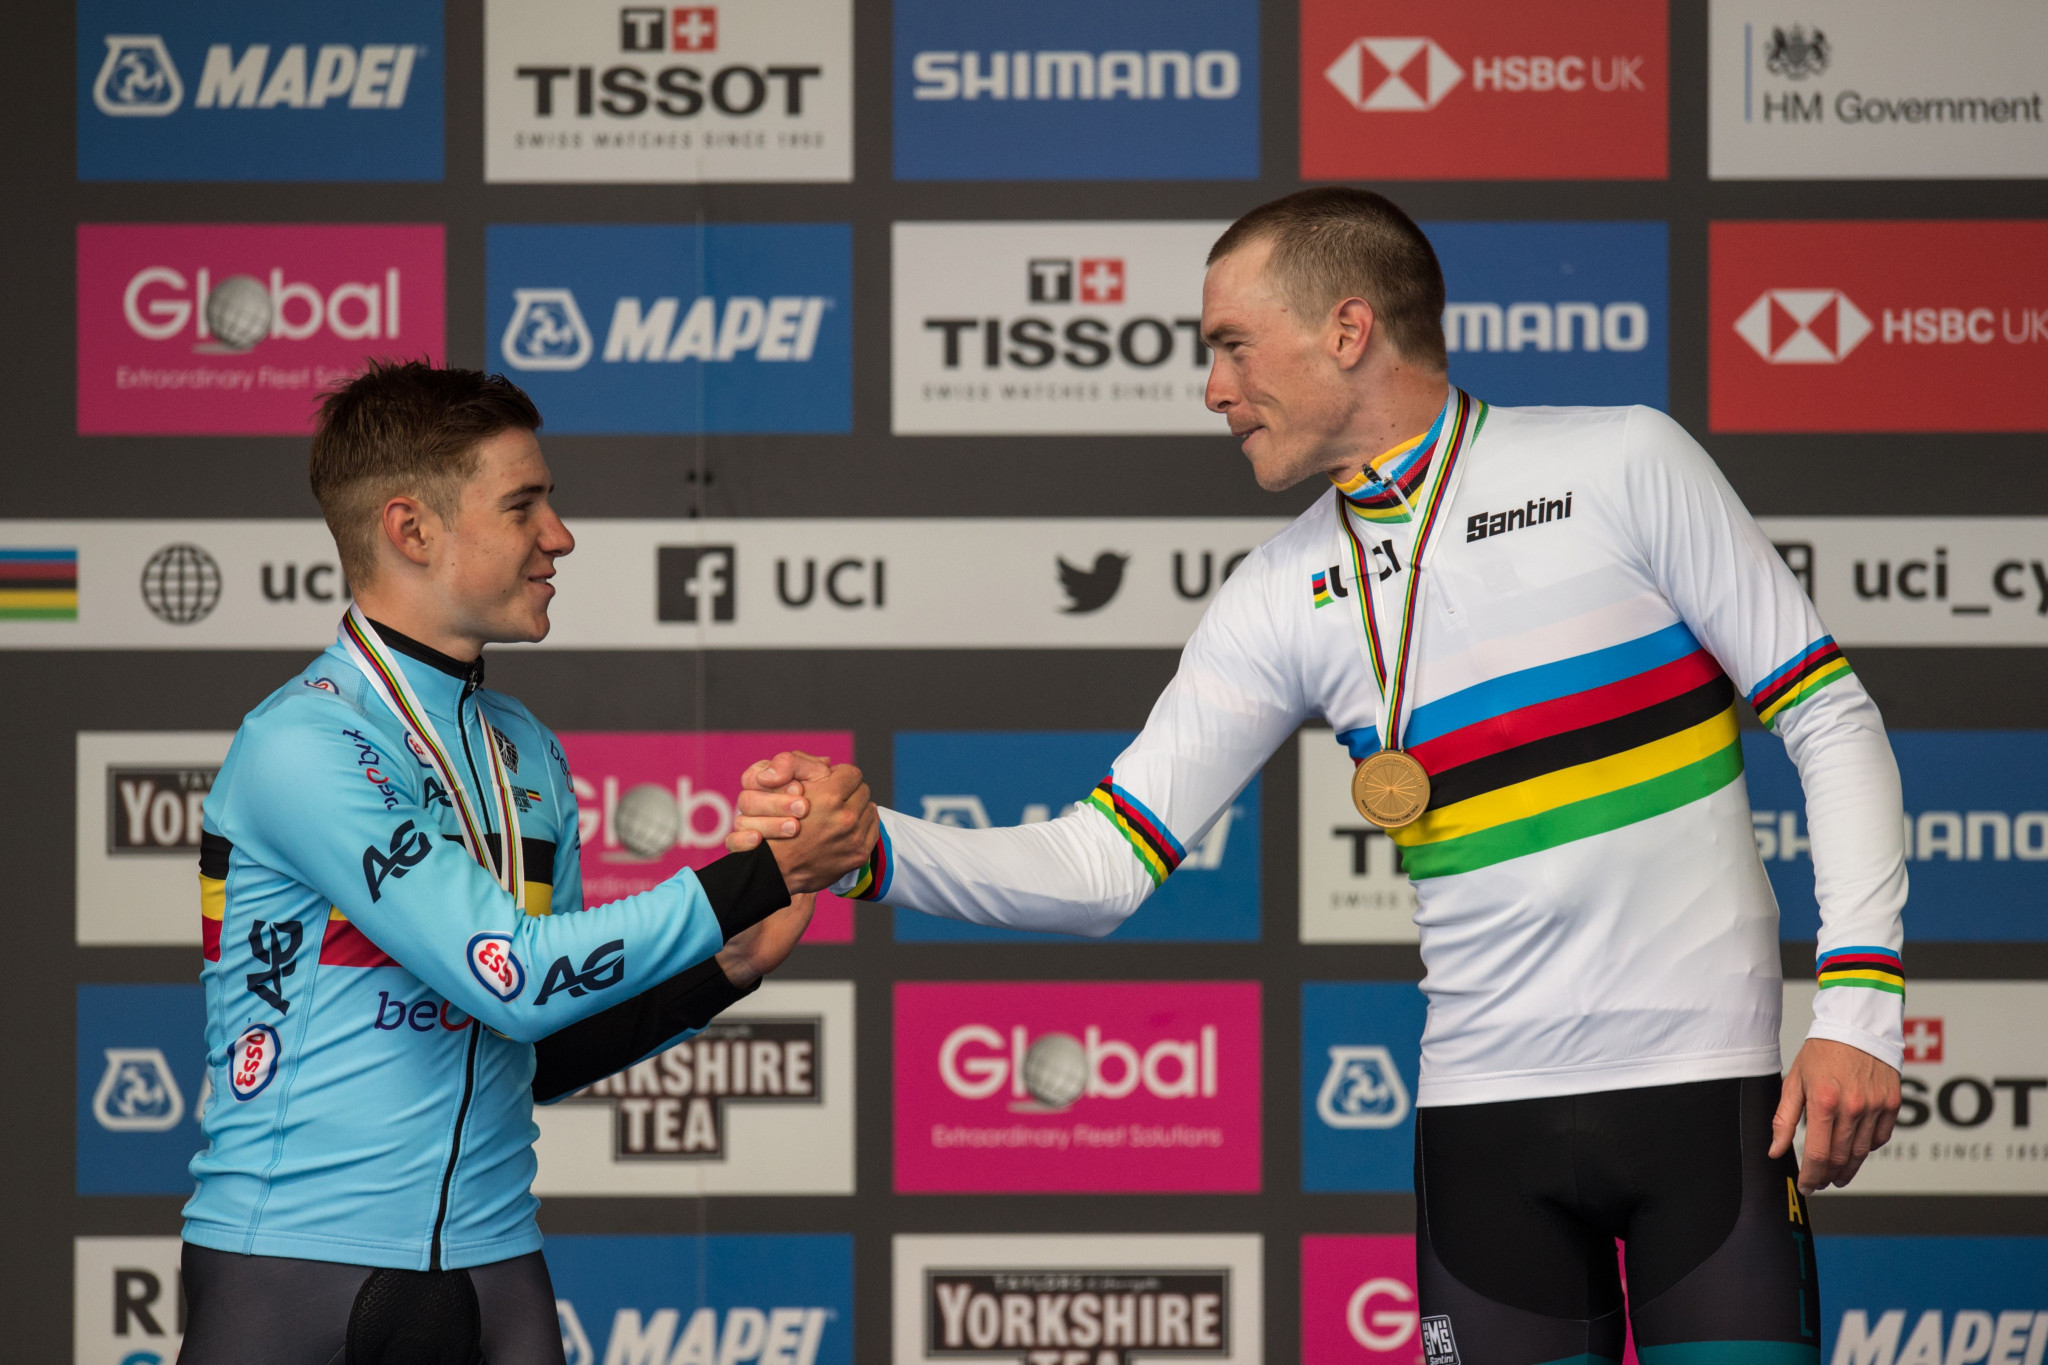 Belgium's teenager Remco Evenepoel finished as the runner-up to Rohan Dennis ©Getty Images